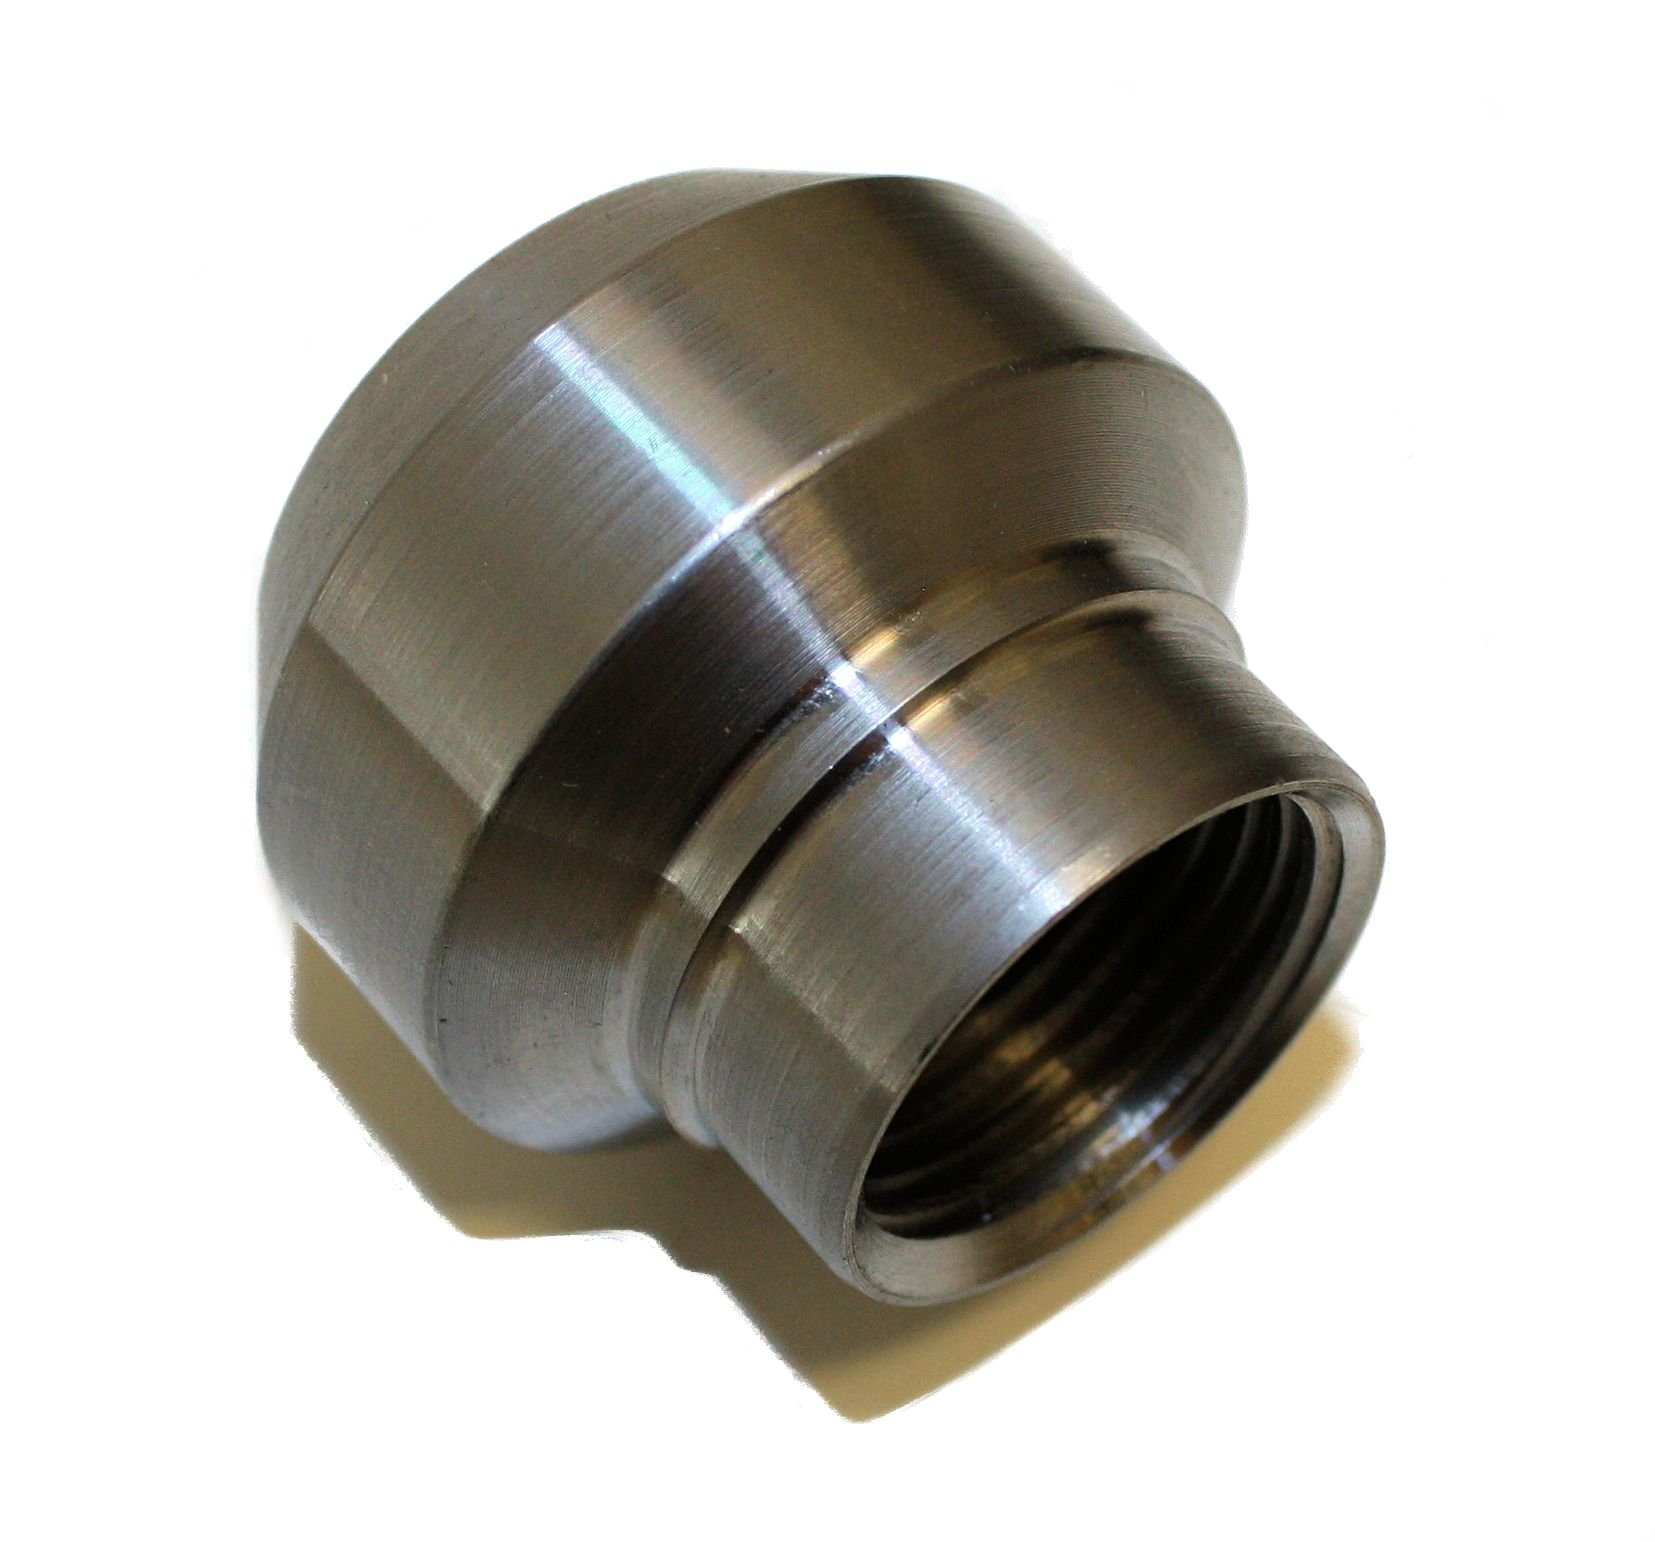 3/4 16 LH Weld-In Tube Insert